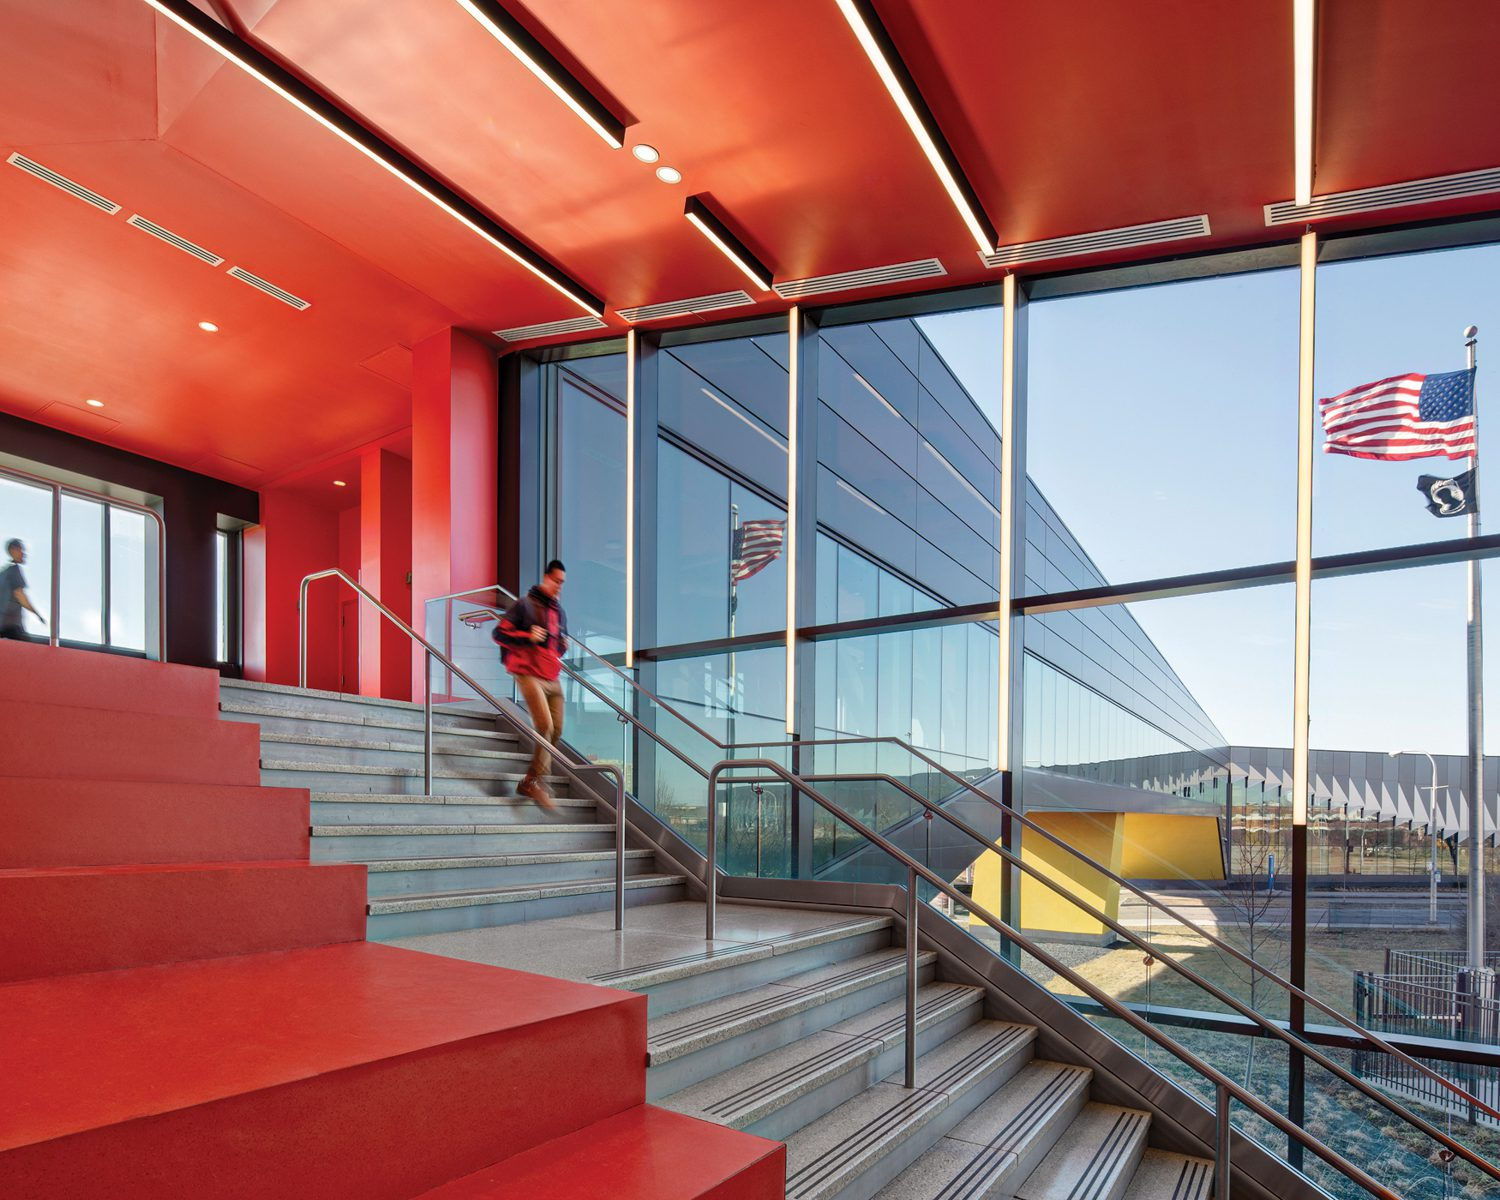 A staircase defined by vibrant red on the floor and ceiling above in Daley College Manufacturing Technology & Engineering Center, Chicago, by JGMA.